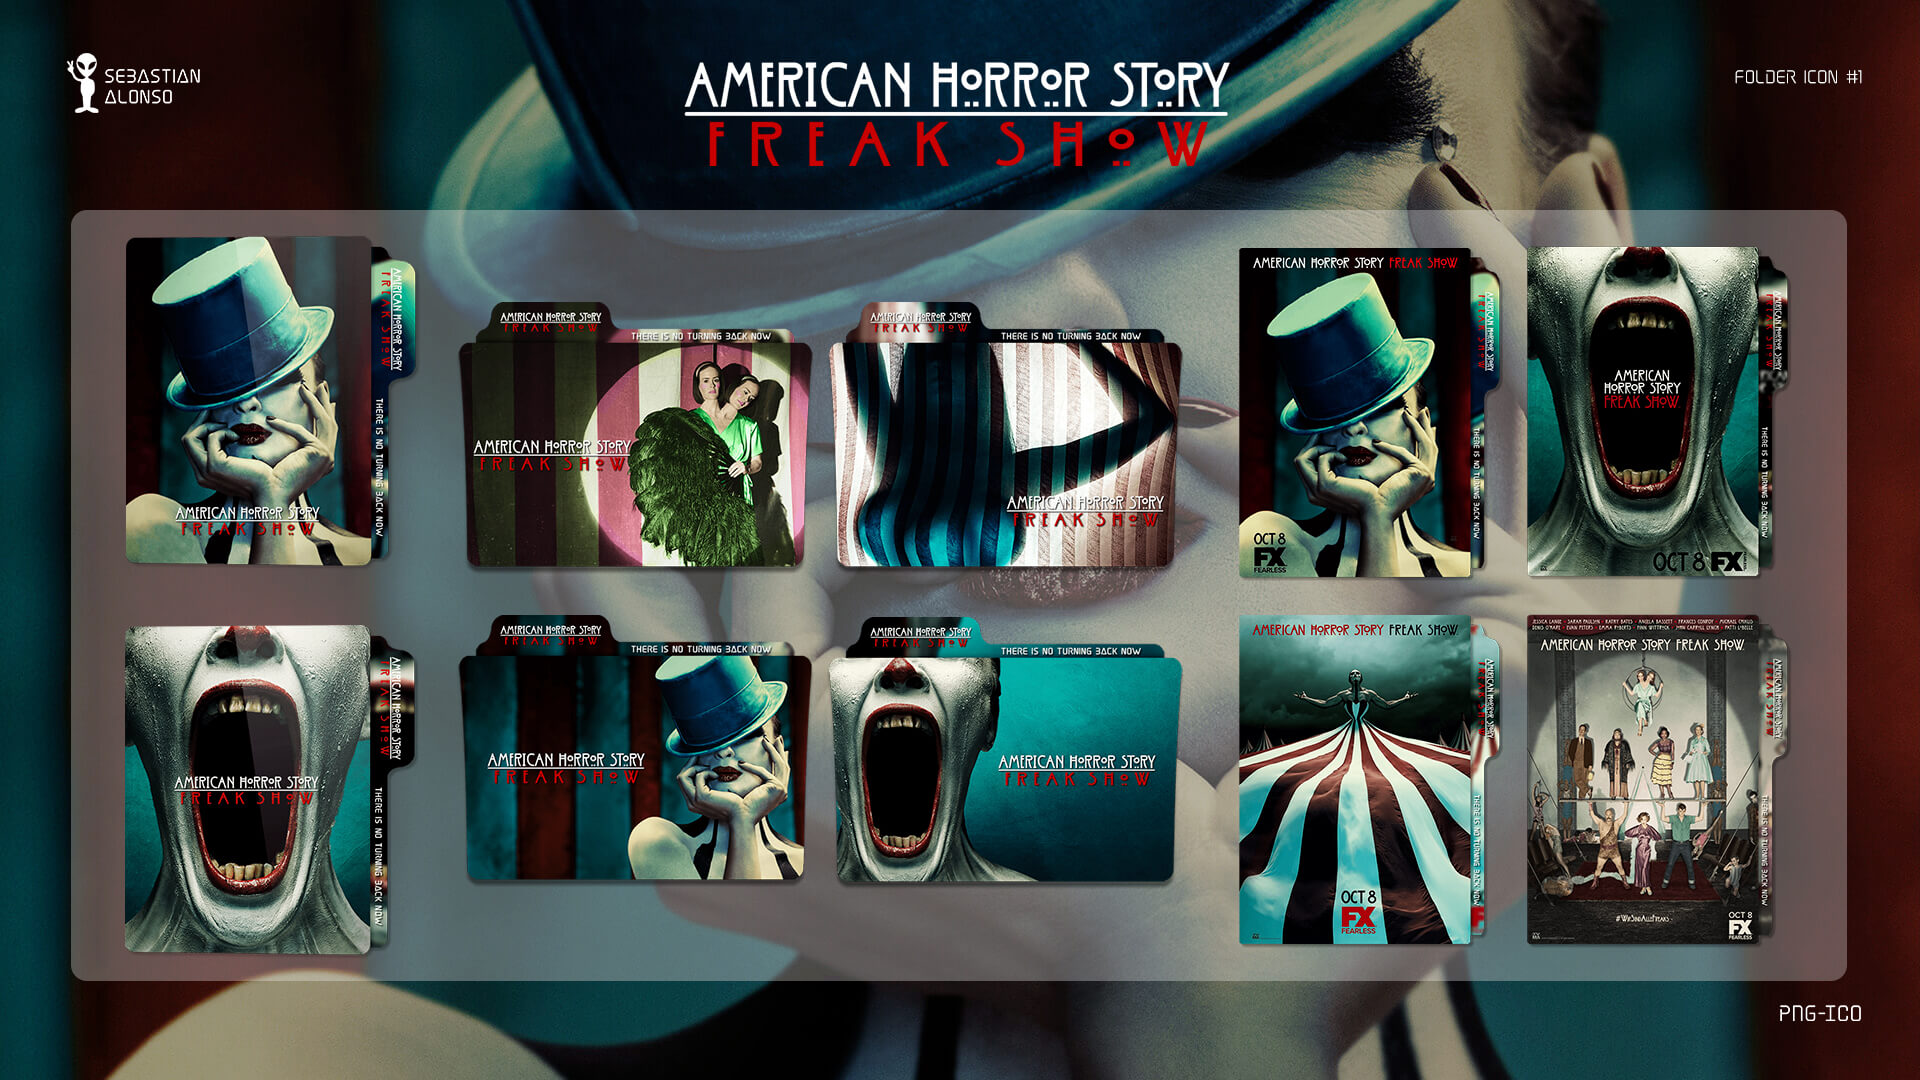 American Horror Story Freak Show Folder Icon 1 By Sebasmgsse On